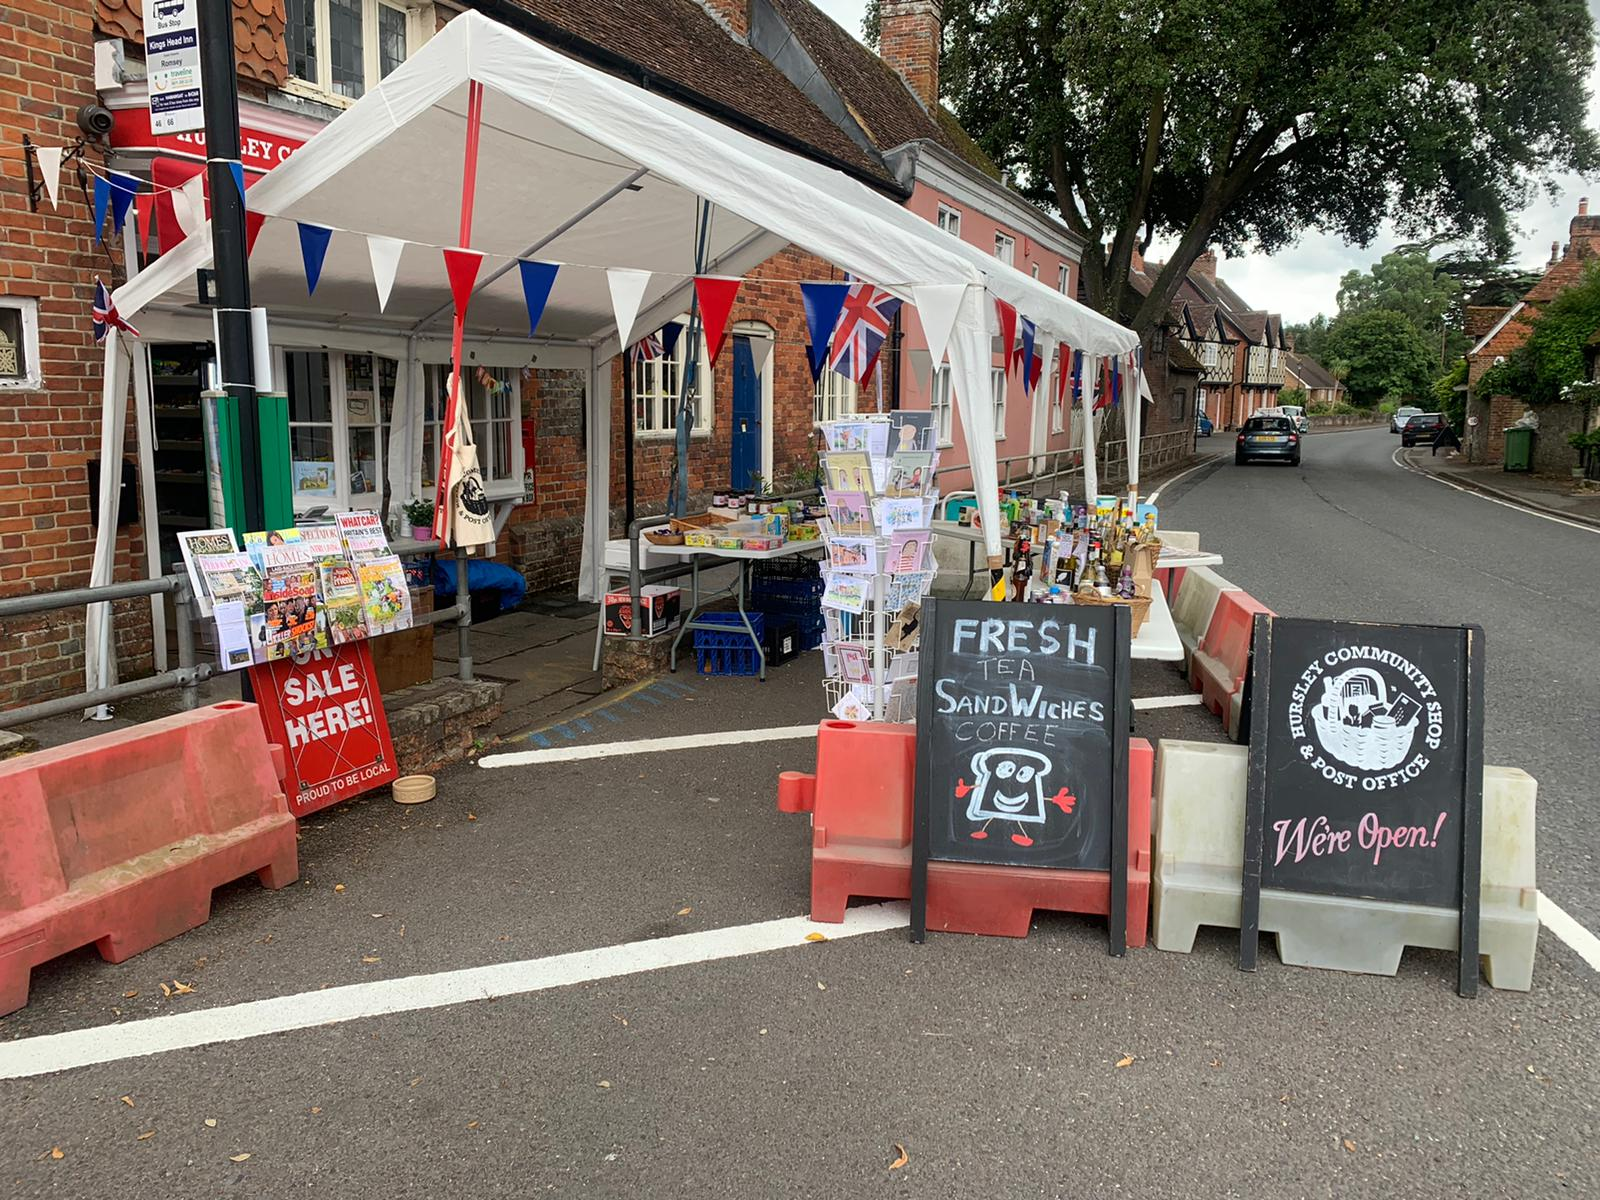 Hursley Community Shop Association Limited